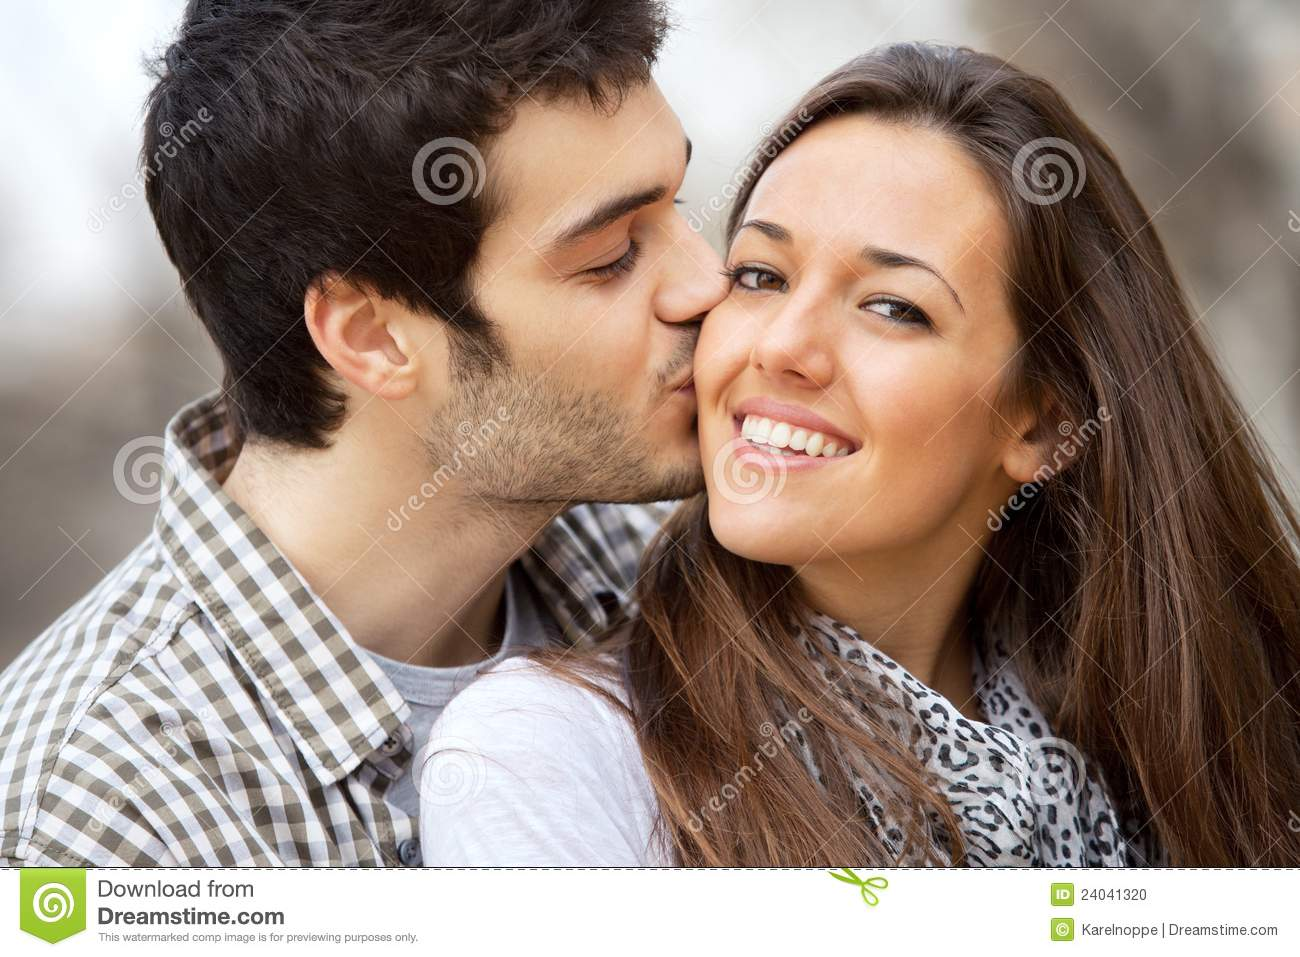 free dating site no subscription medical alert